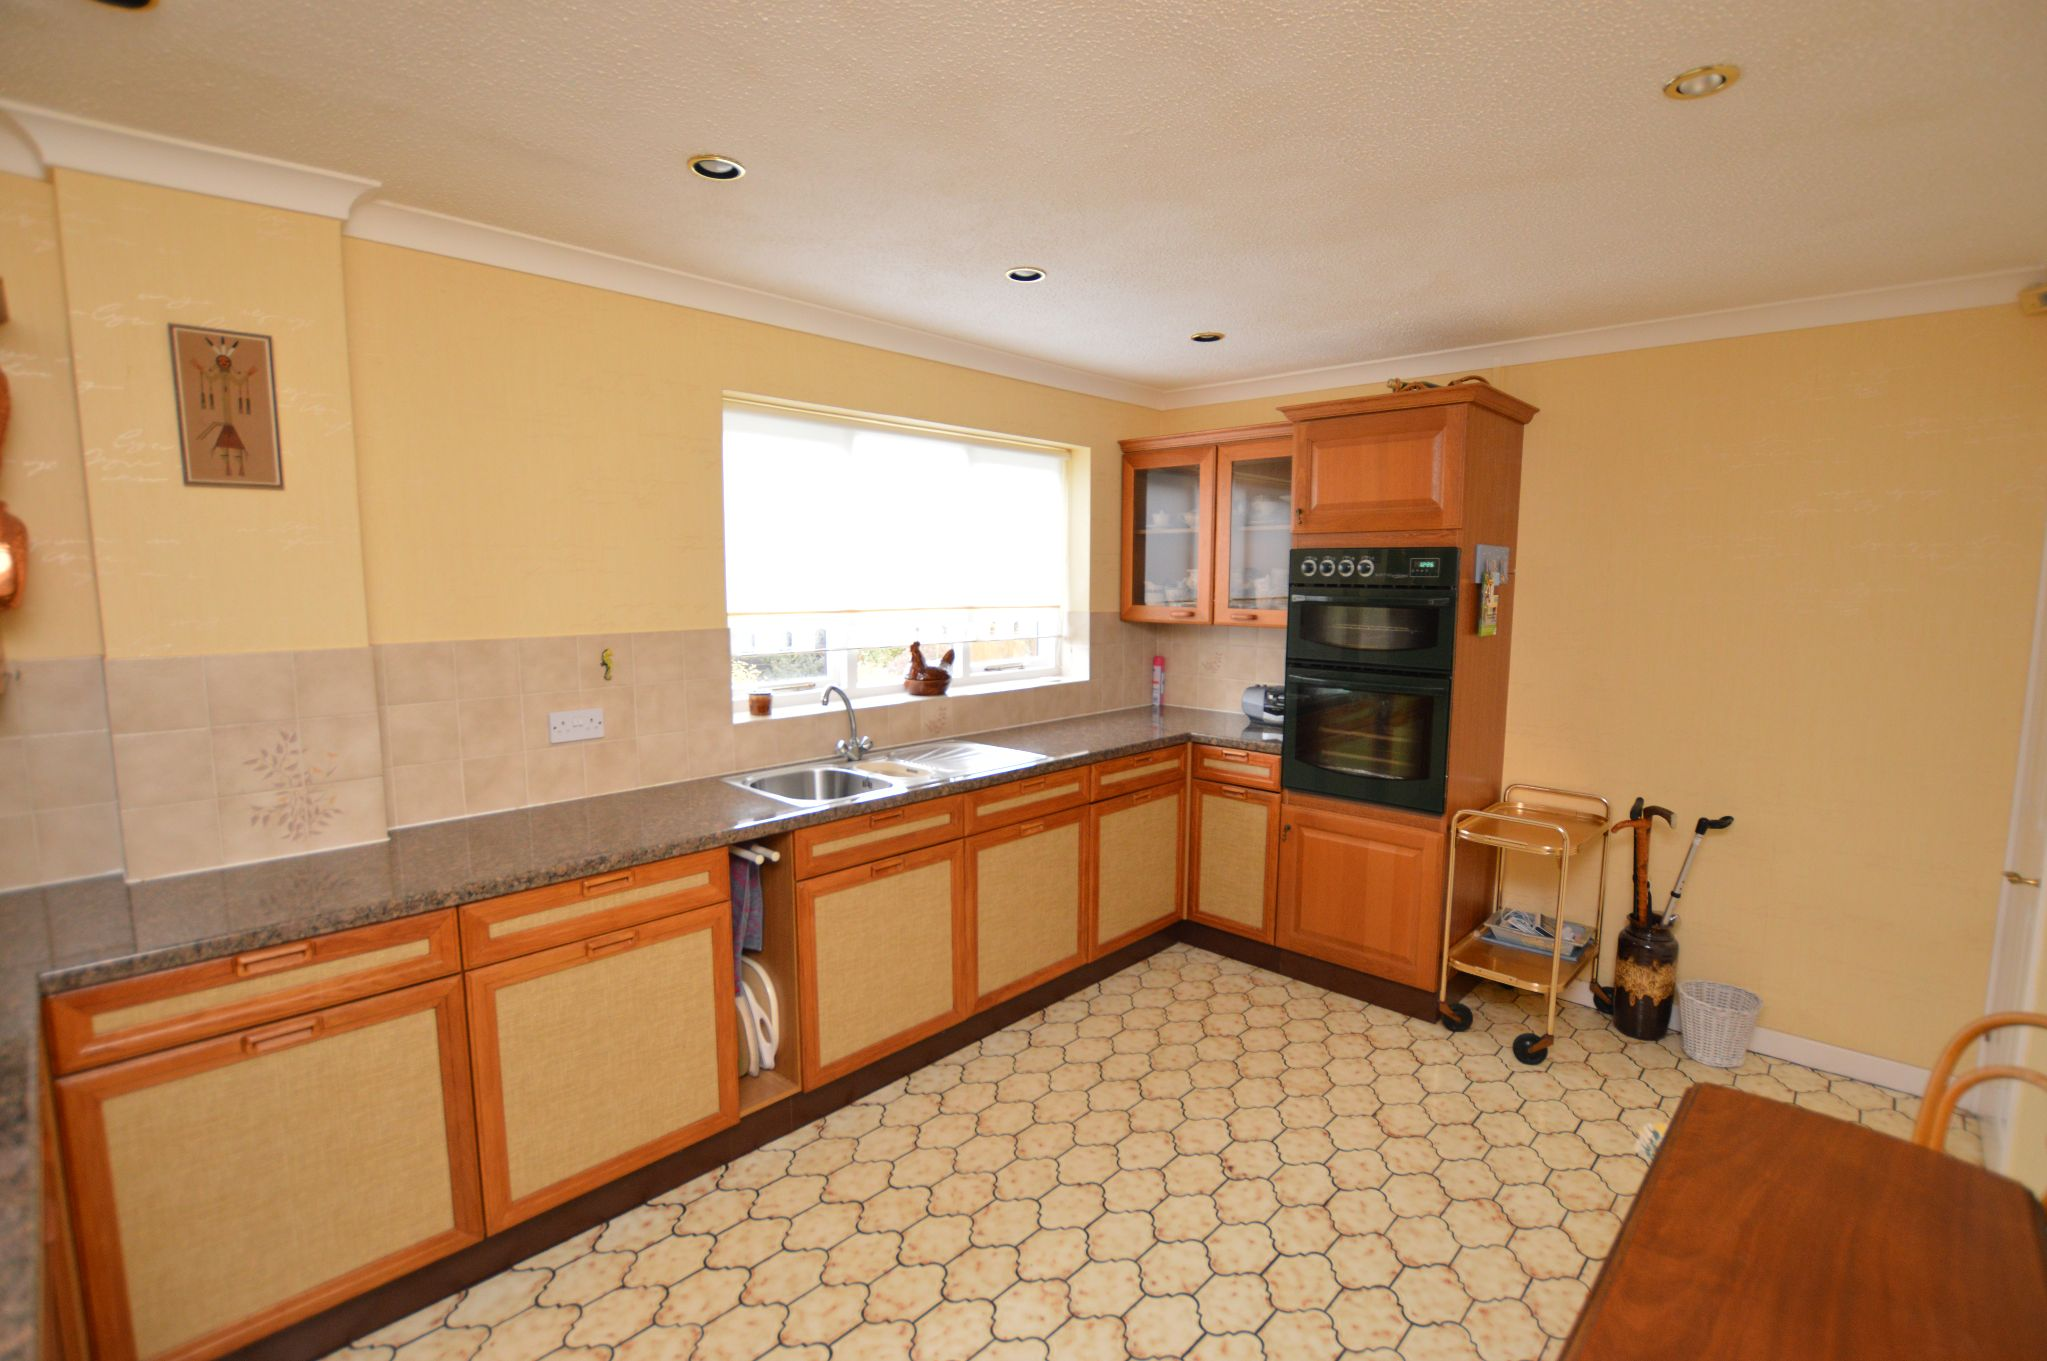 4 bedroom detached house For Sale in Abergele - Kitchen View 2